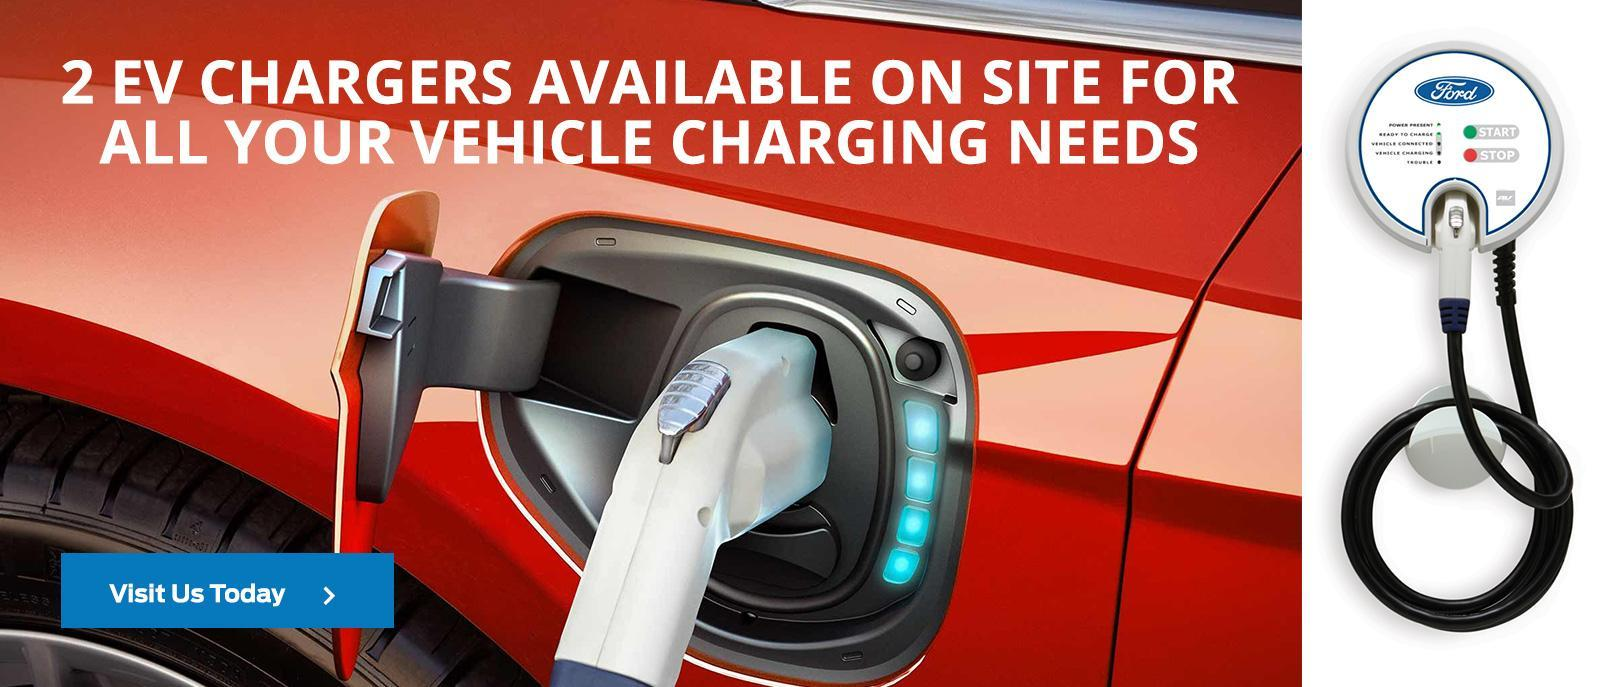 2 EV Chargers Available